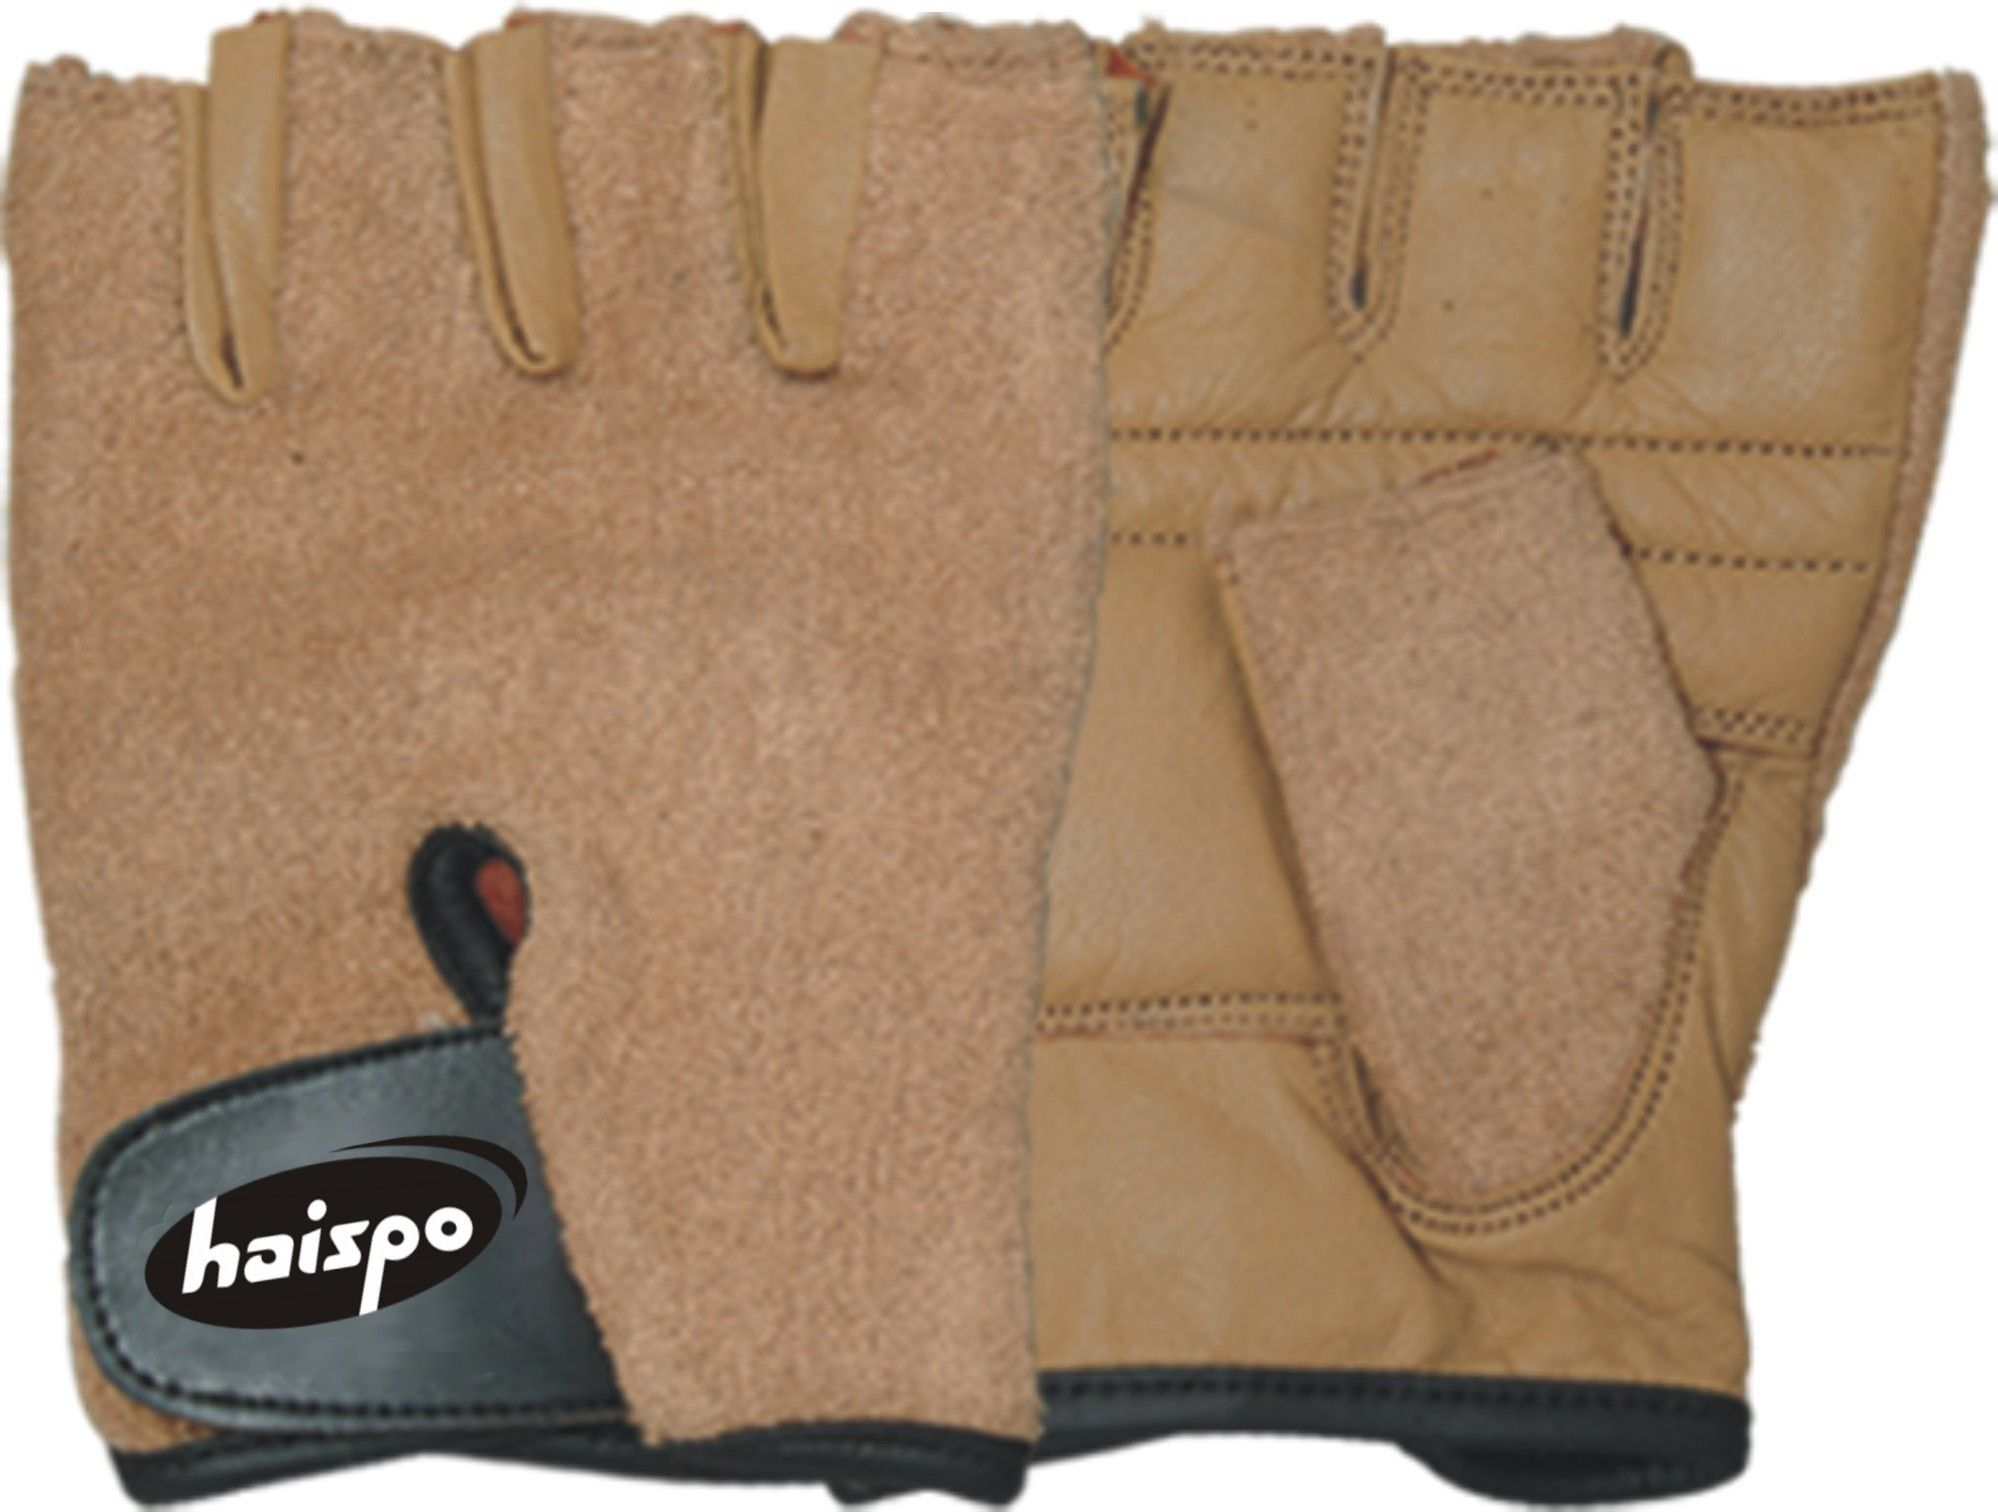 Available in brown leather & brown towel back